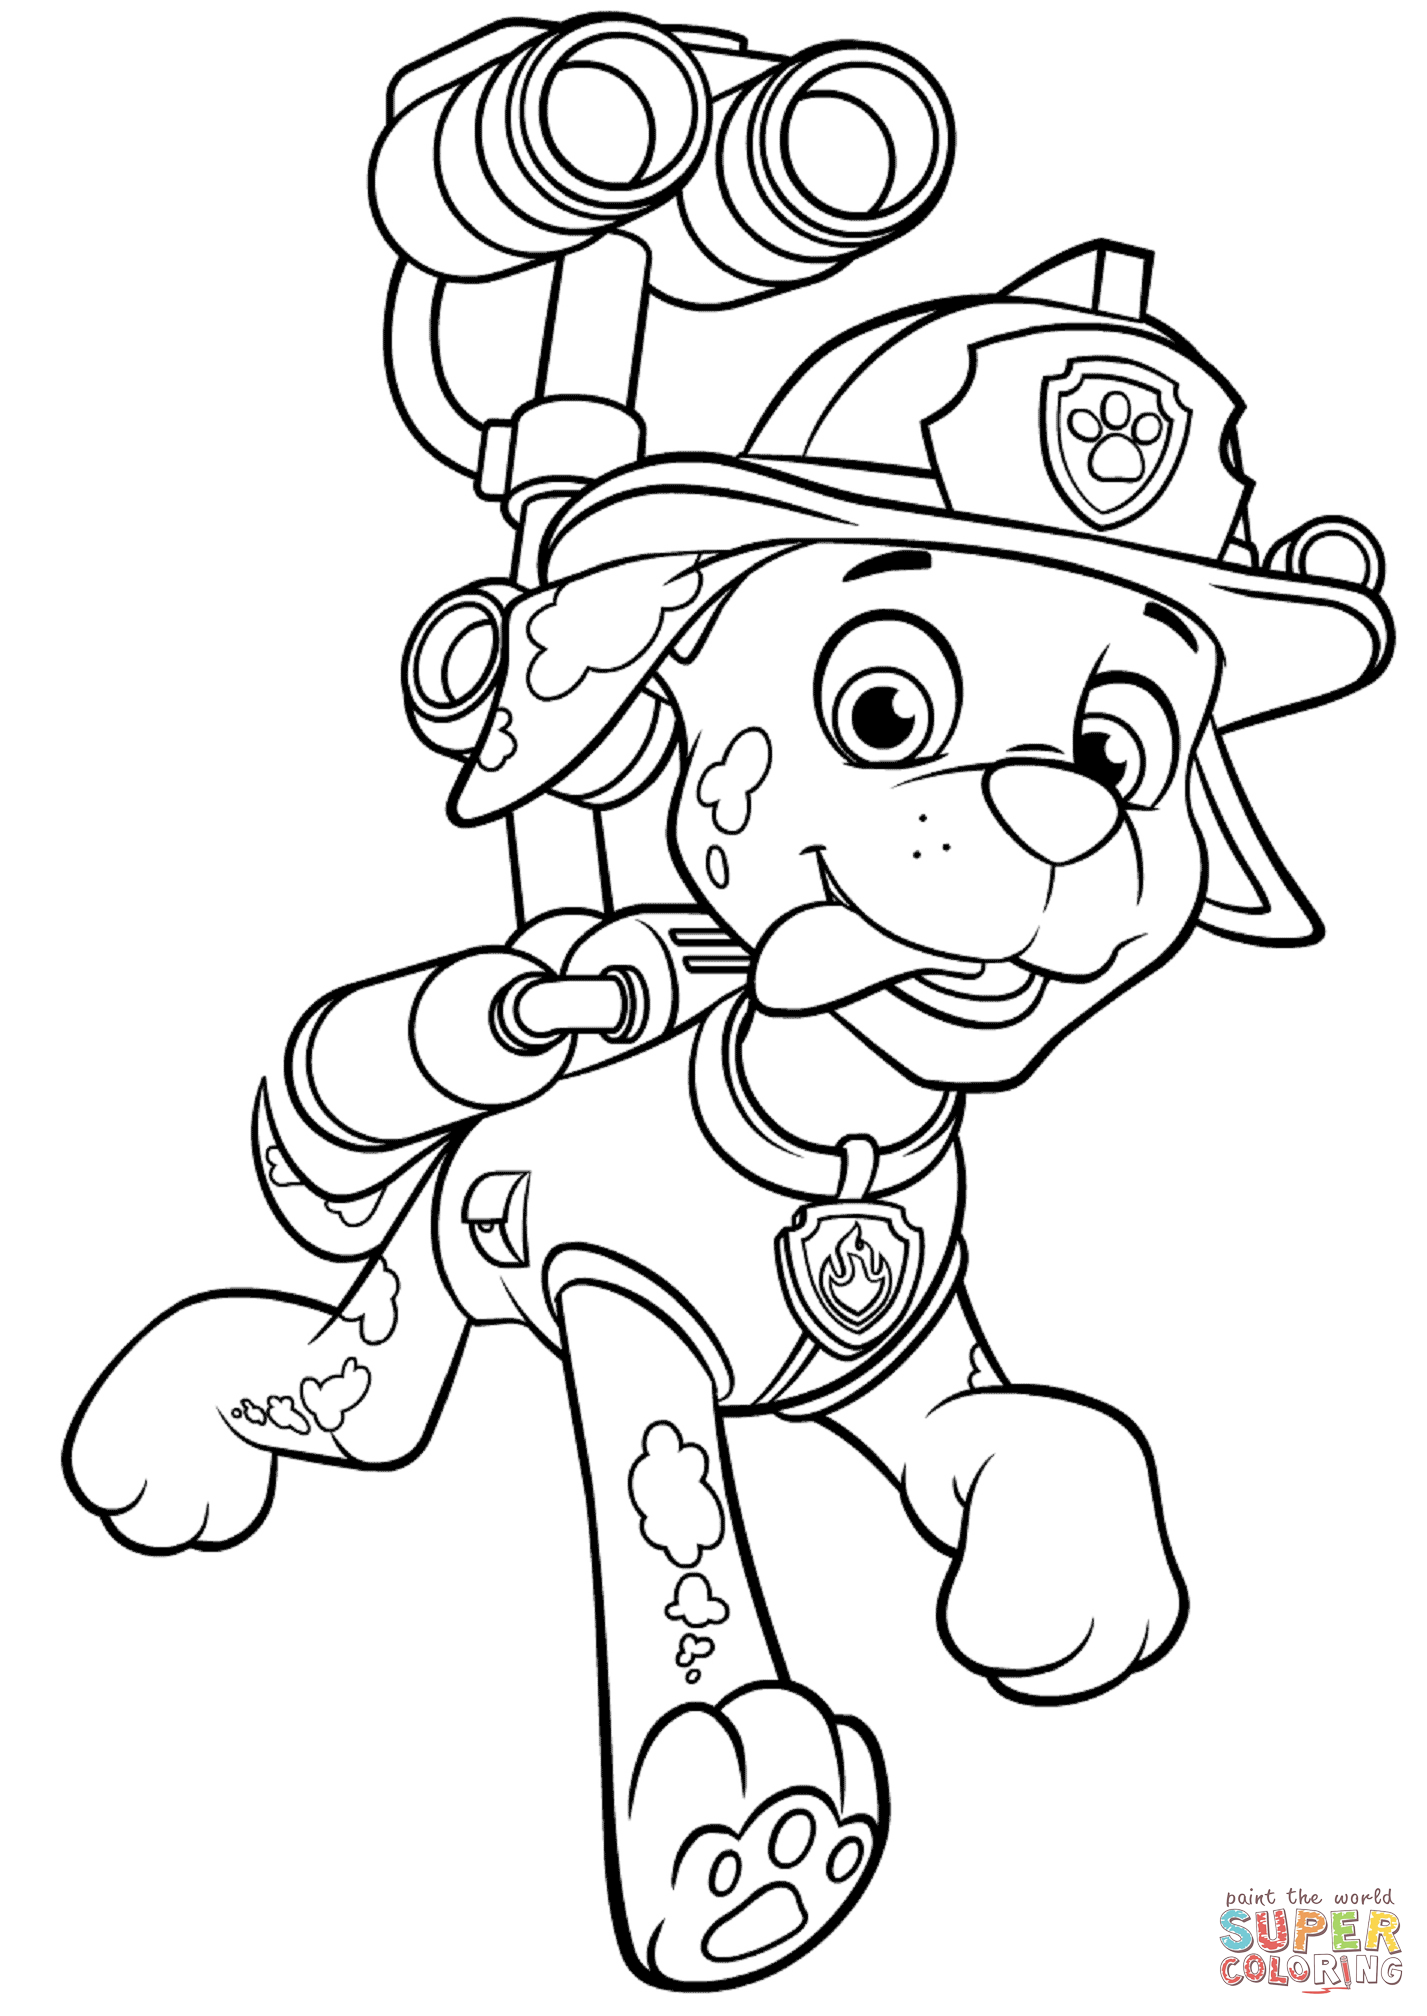 Coloring Pages Paw Patrol Marshall : Paw patrol coloring pages marshall and firetruck